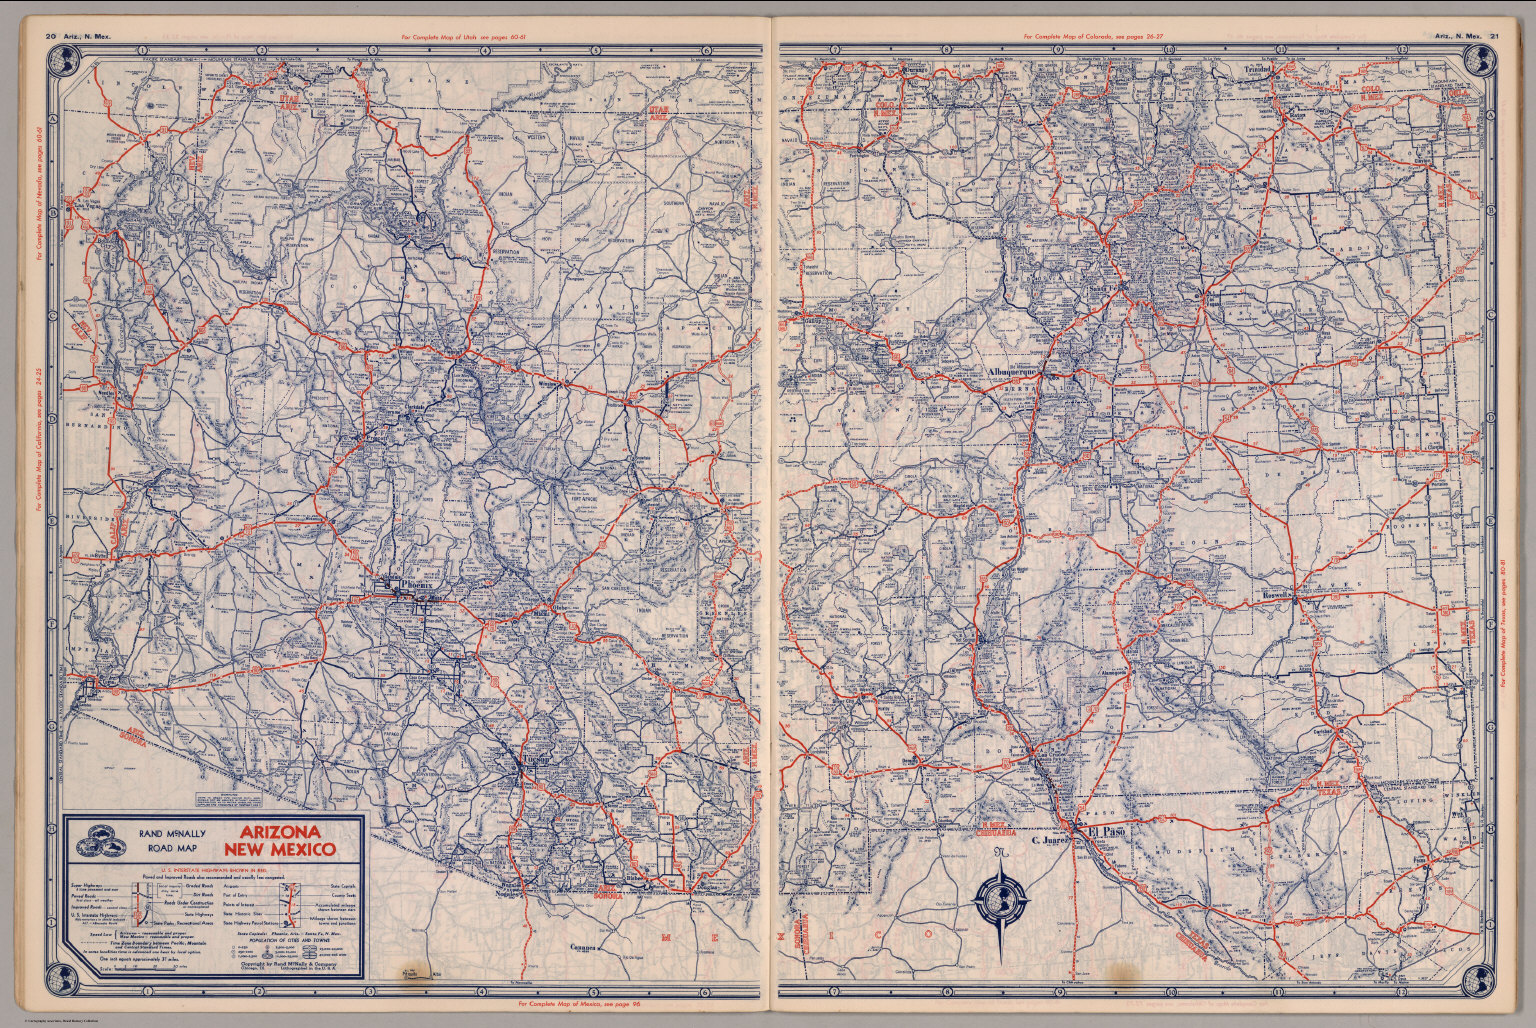 Road map of Arizona, New Mexico - David Rumsey Historical Map Collection